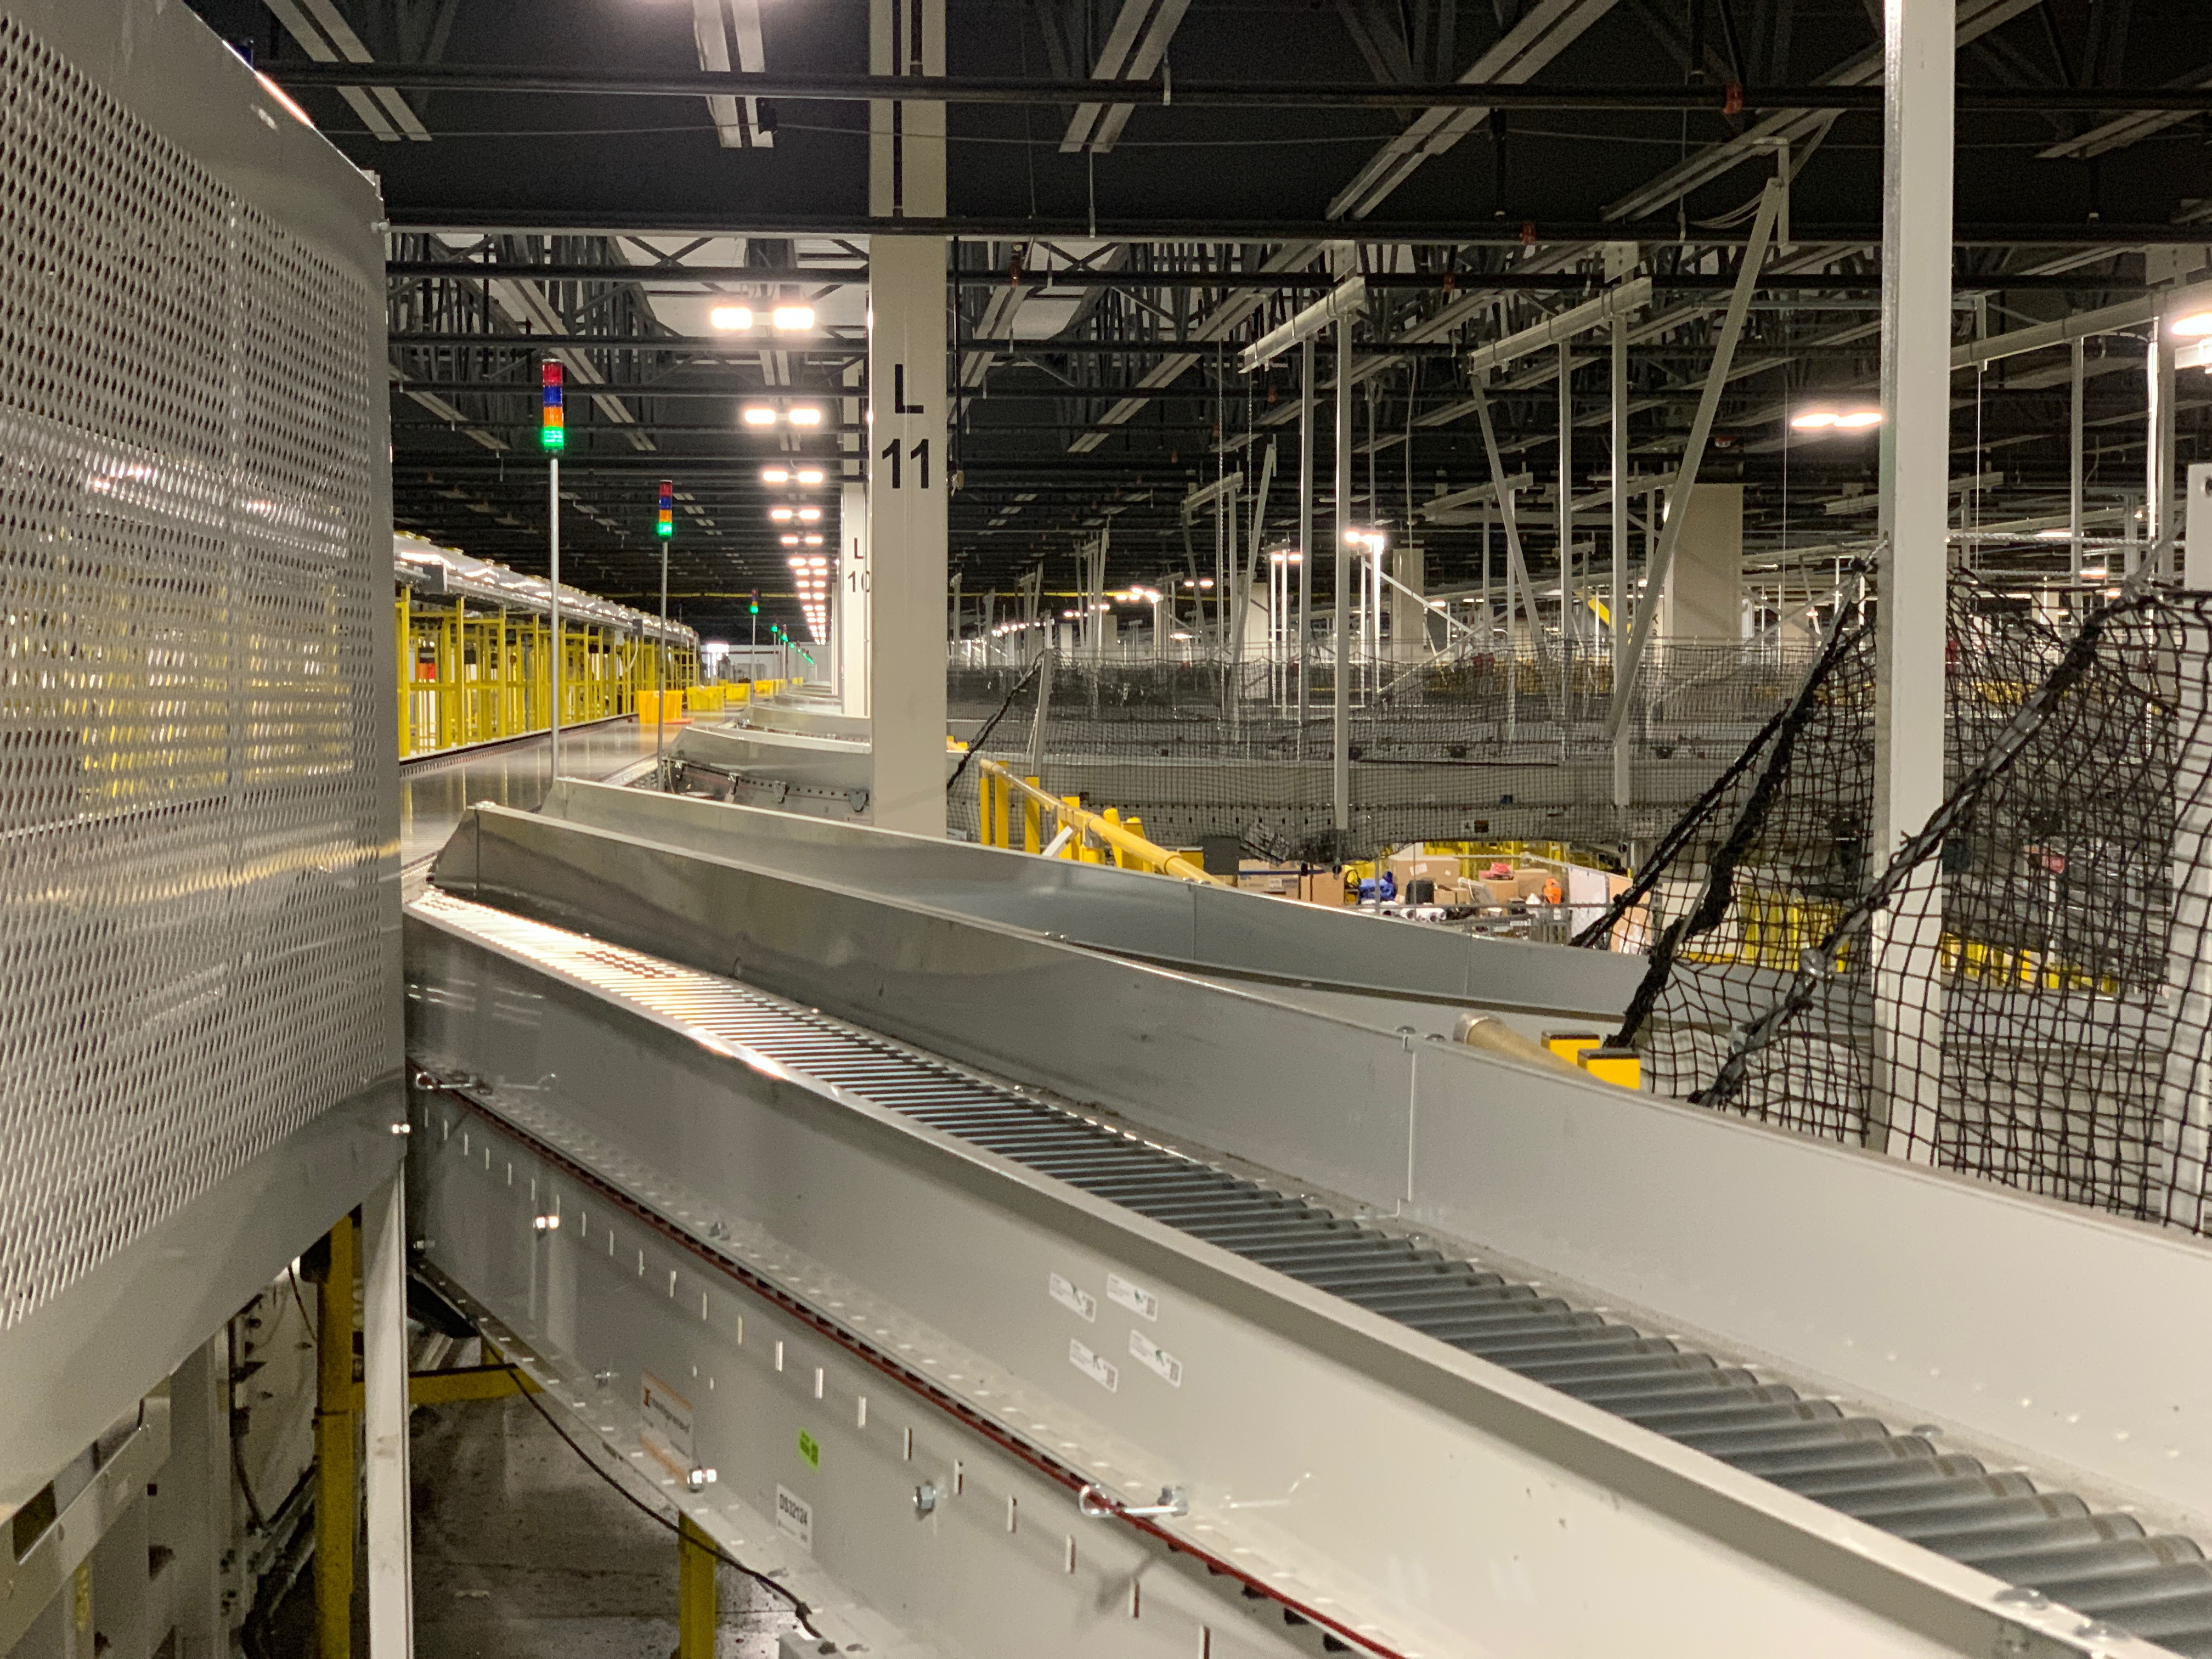 Amazon conveyor belt system